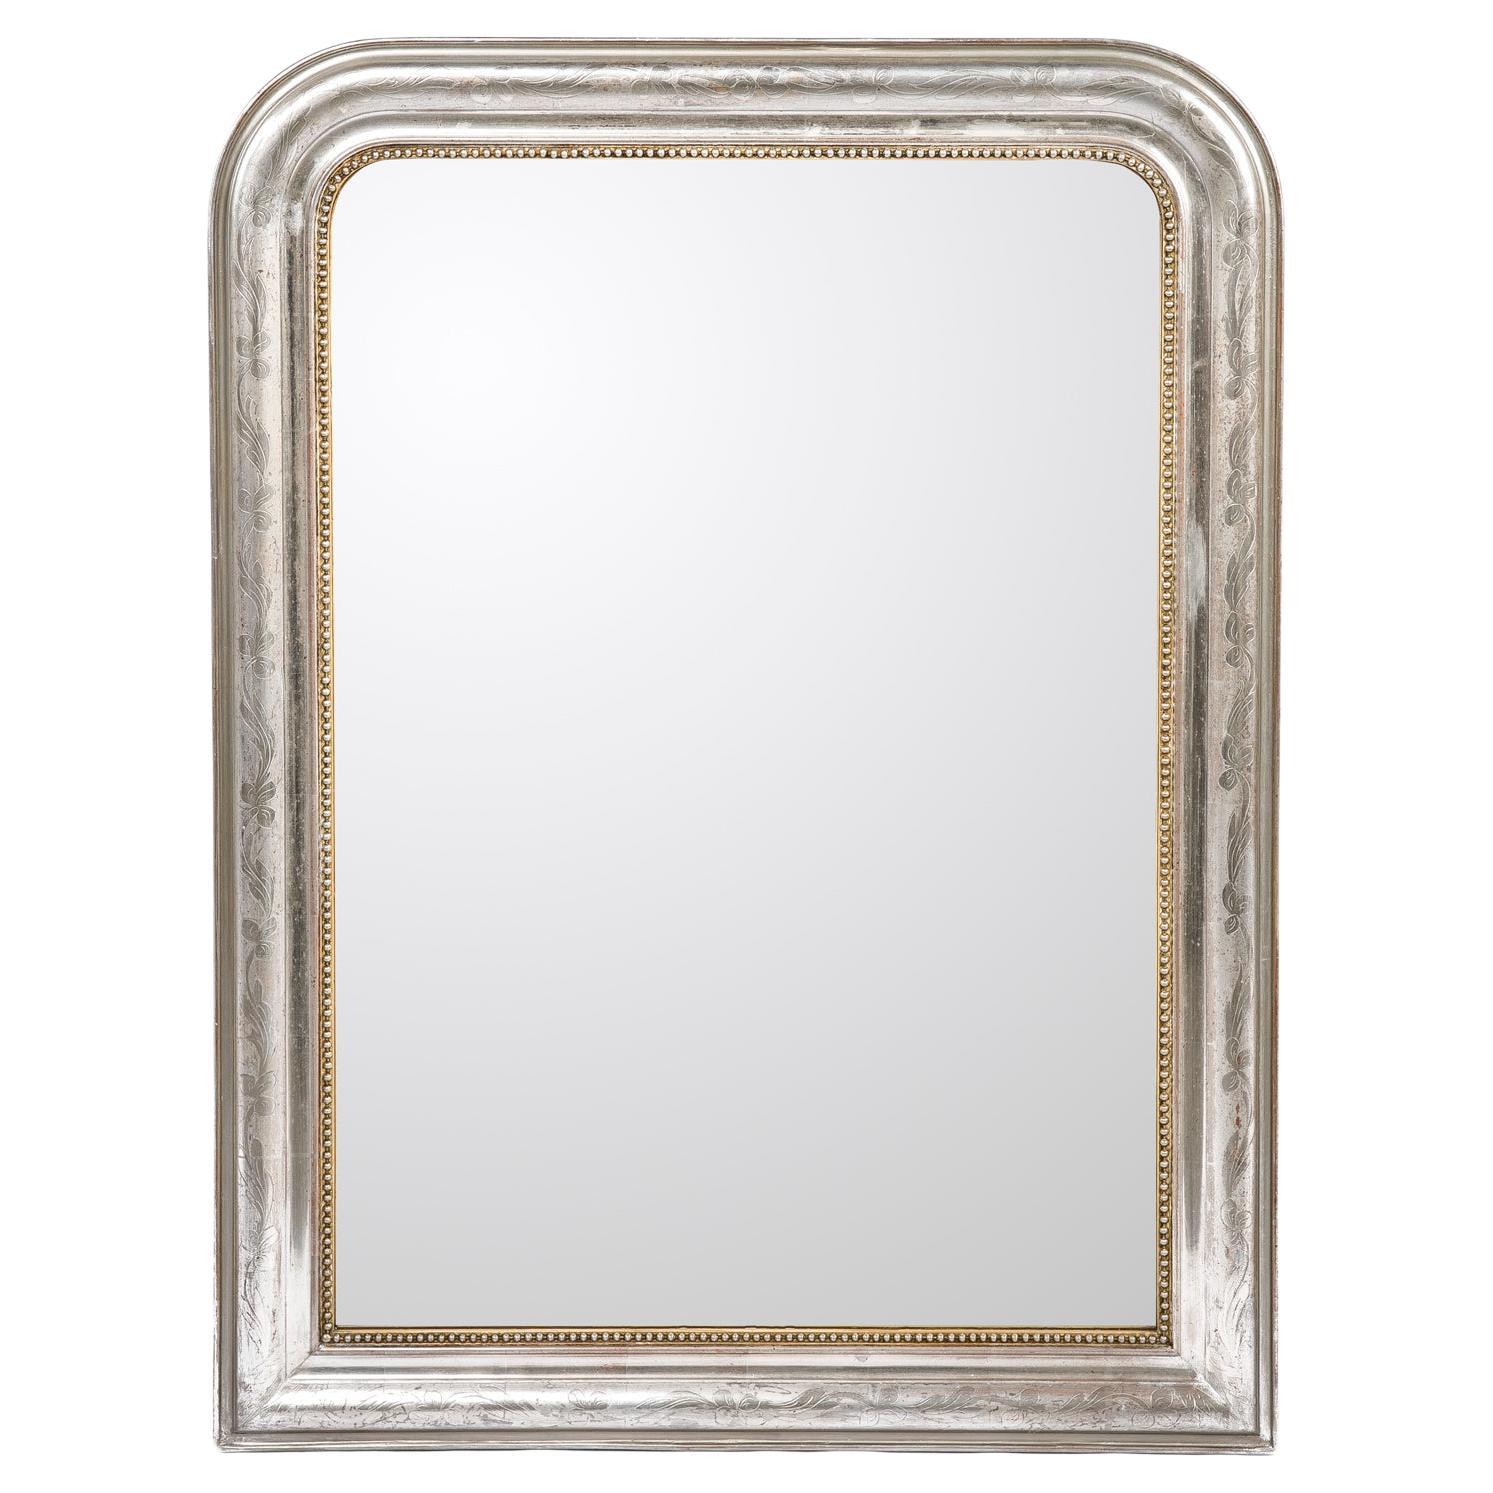 Antique 19th-Century French Silver Leaf Gilt Louis Philippe Mirror